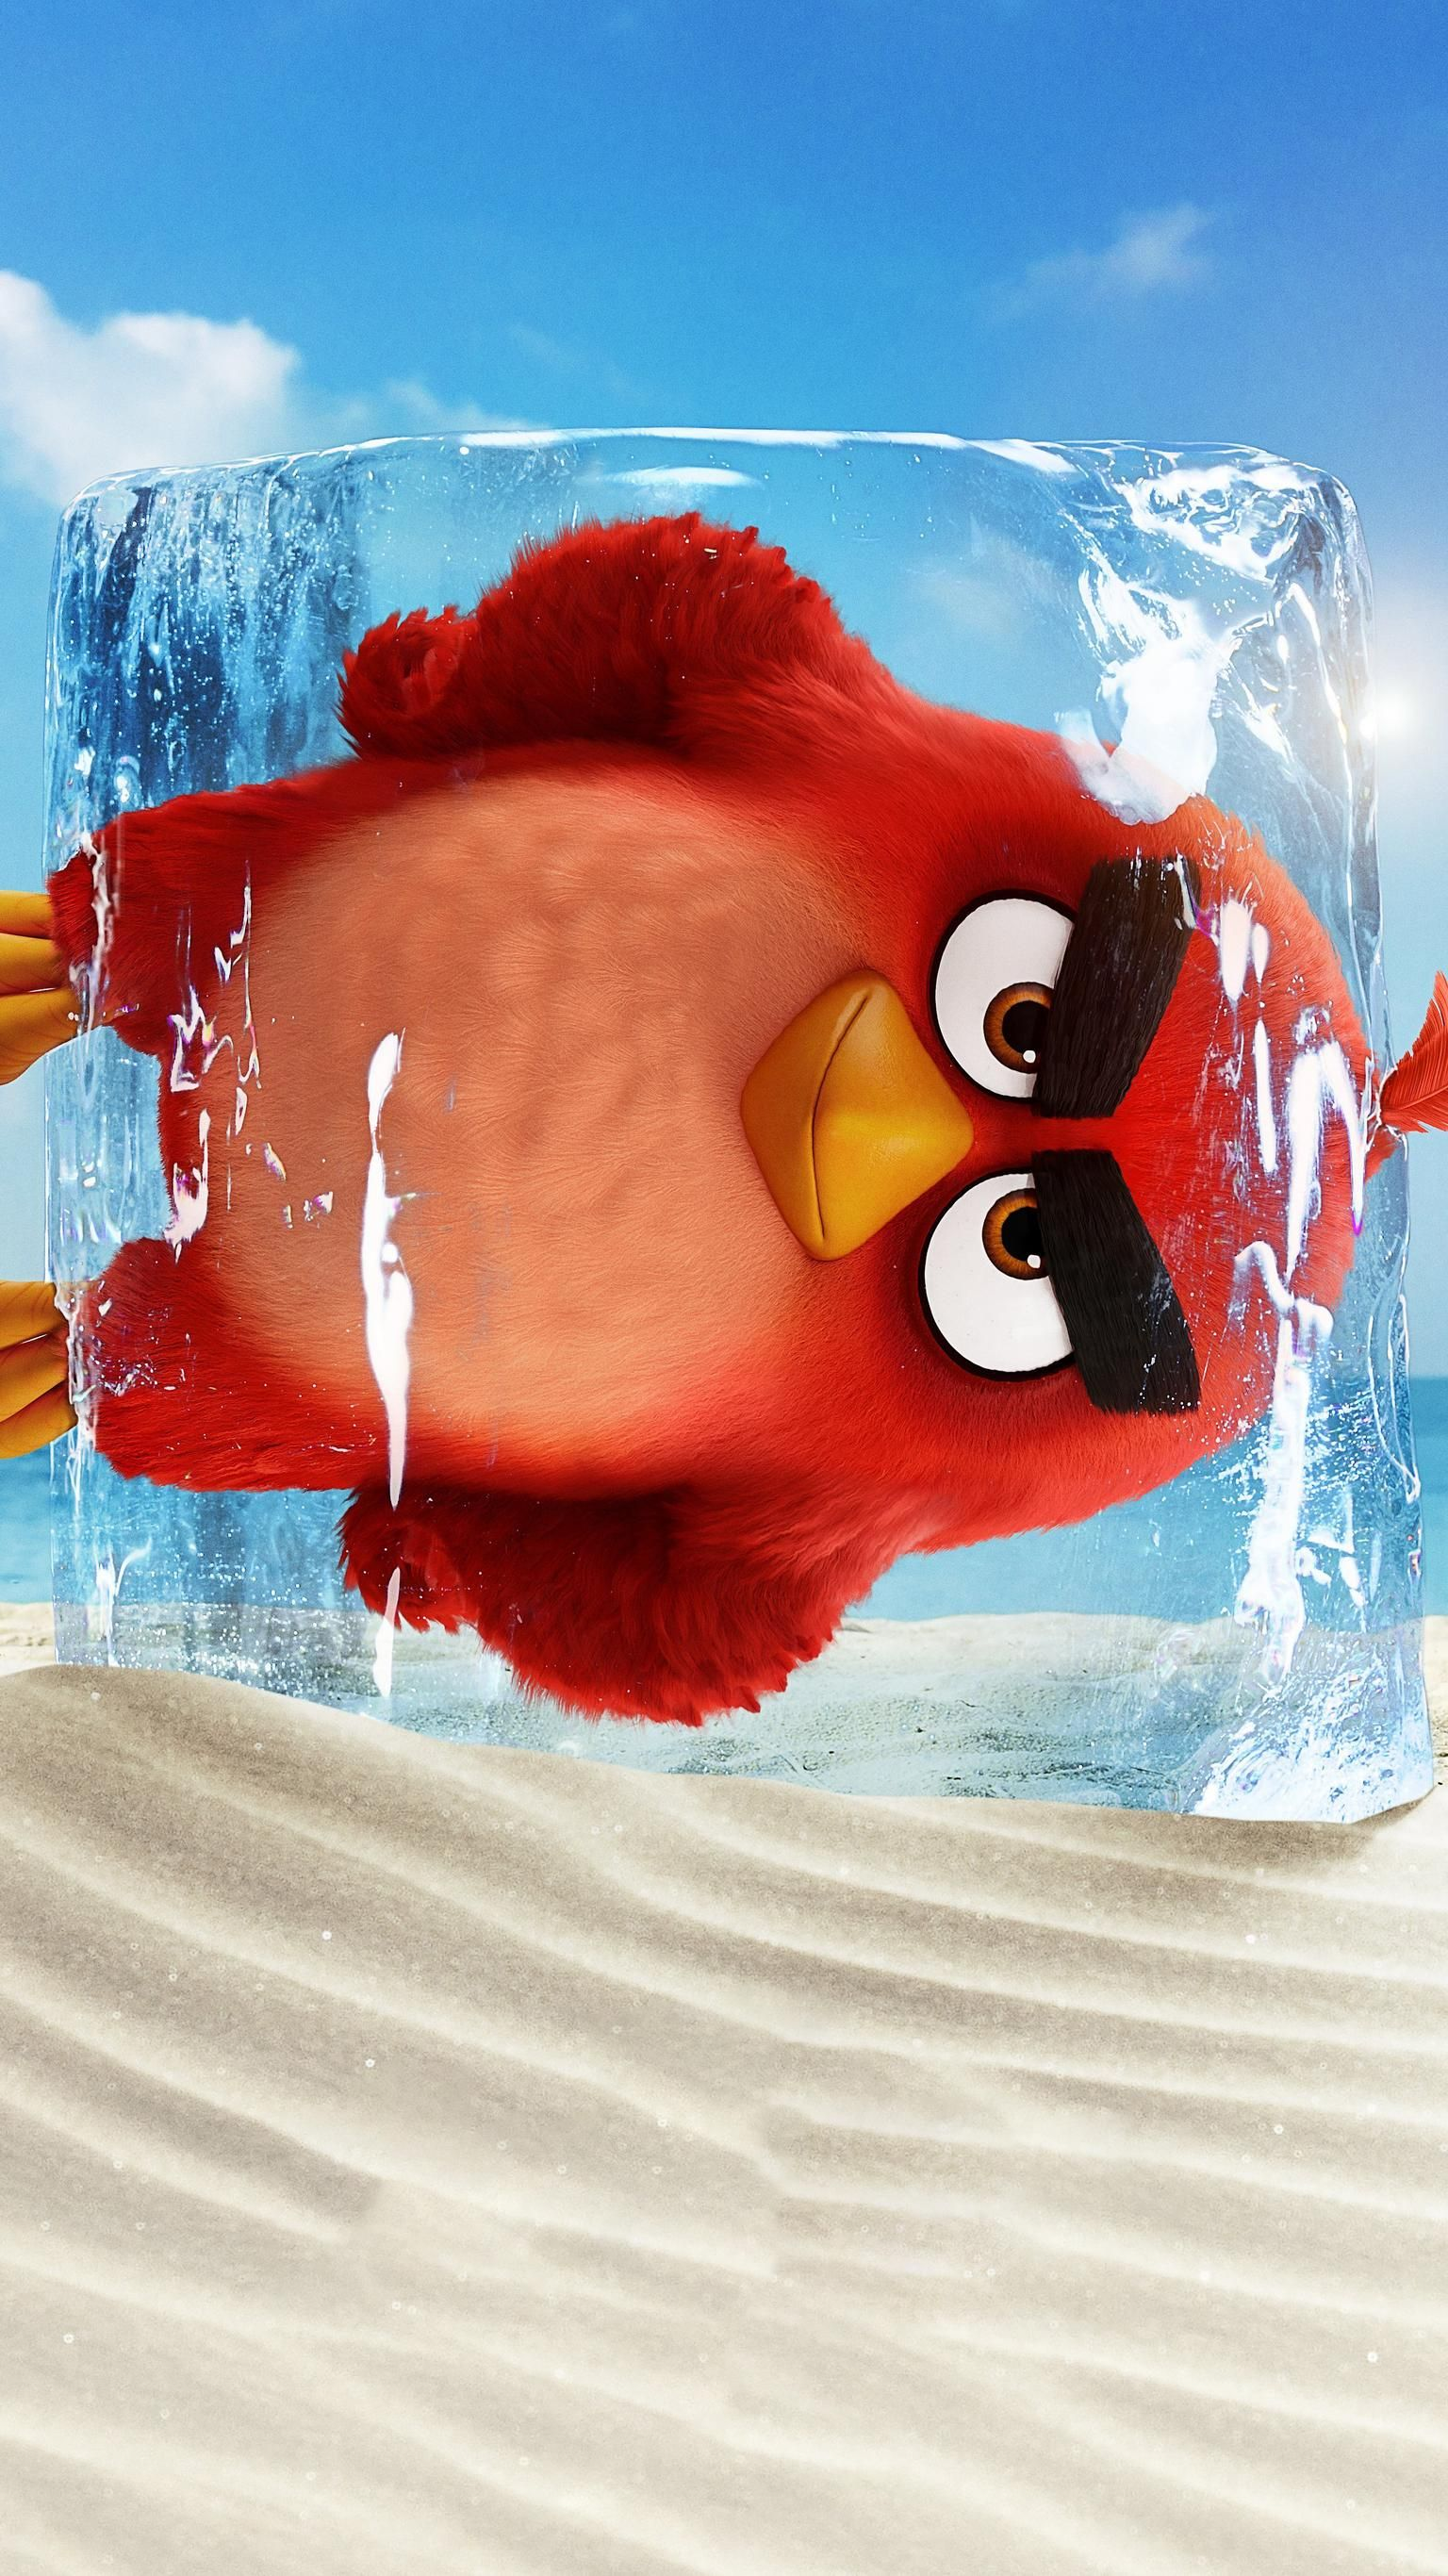 The Angry Birds Movie 2 Phone Wallpaper - Angry Birds Movie 2 , HD Wallpaper & Backgrounds